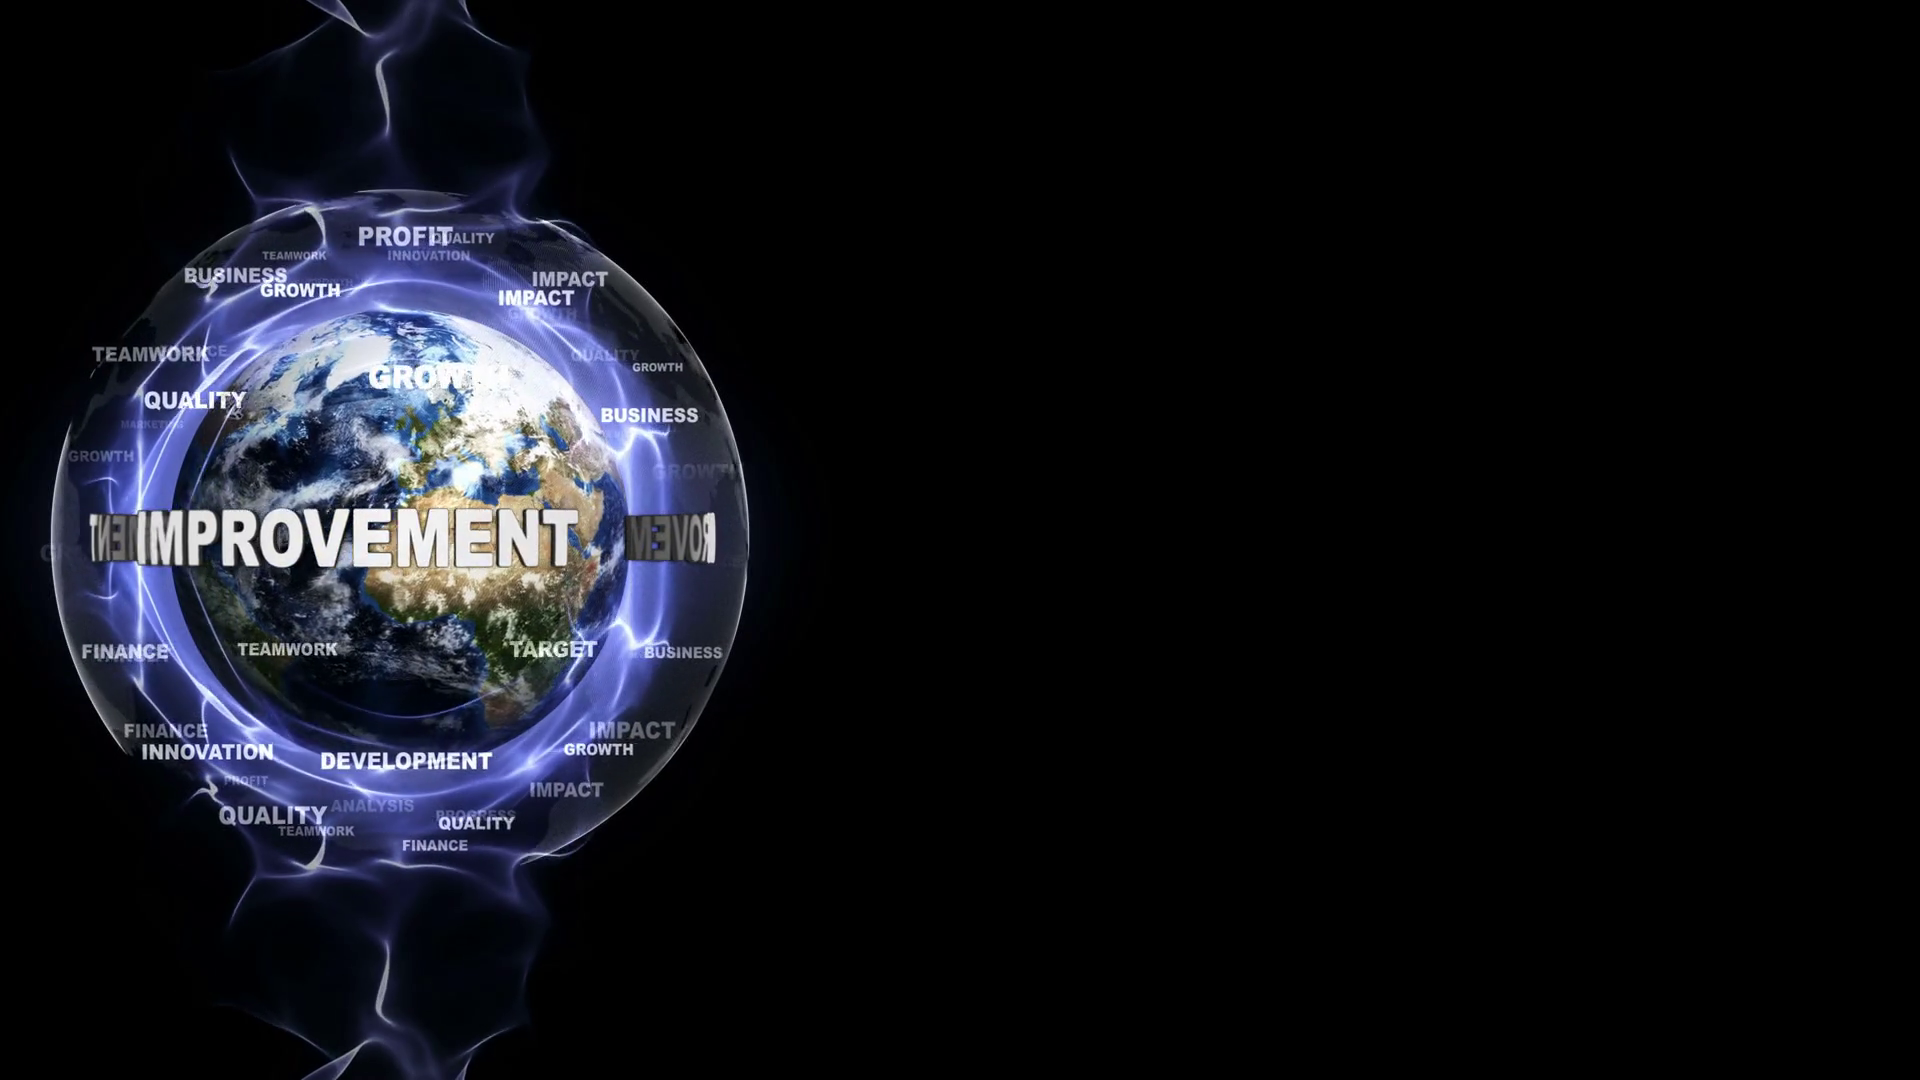 IMPROVEMENT Text and Keywords Around the World Rendering 1920x1080